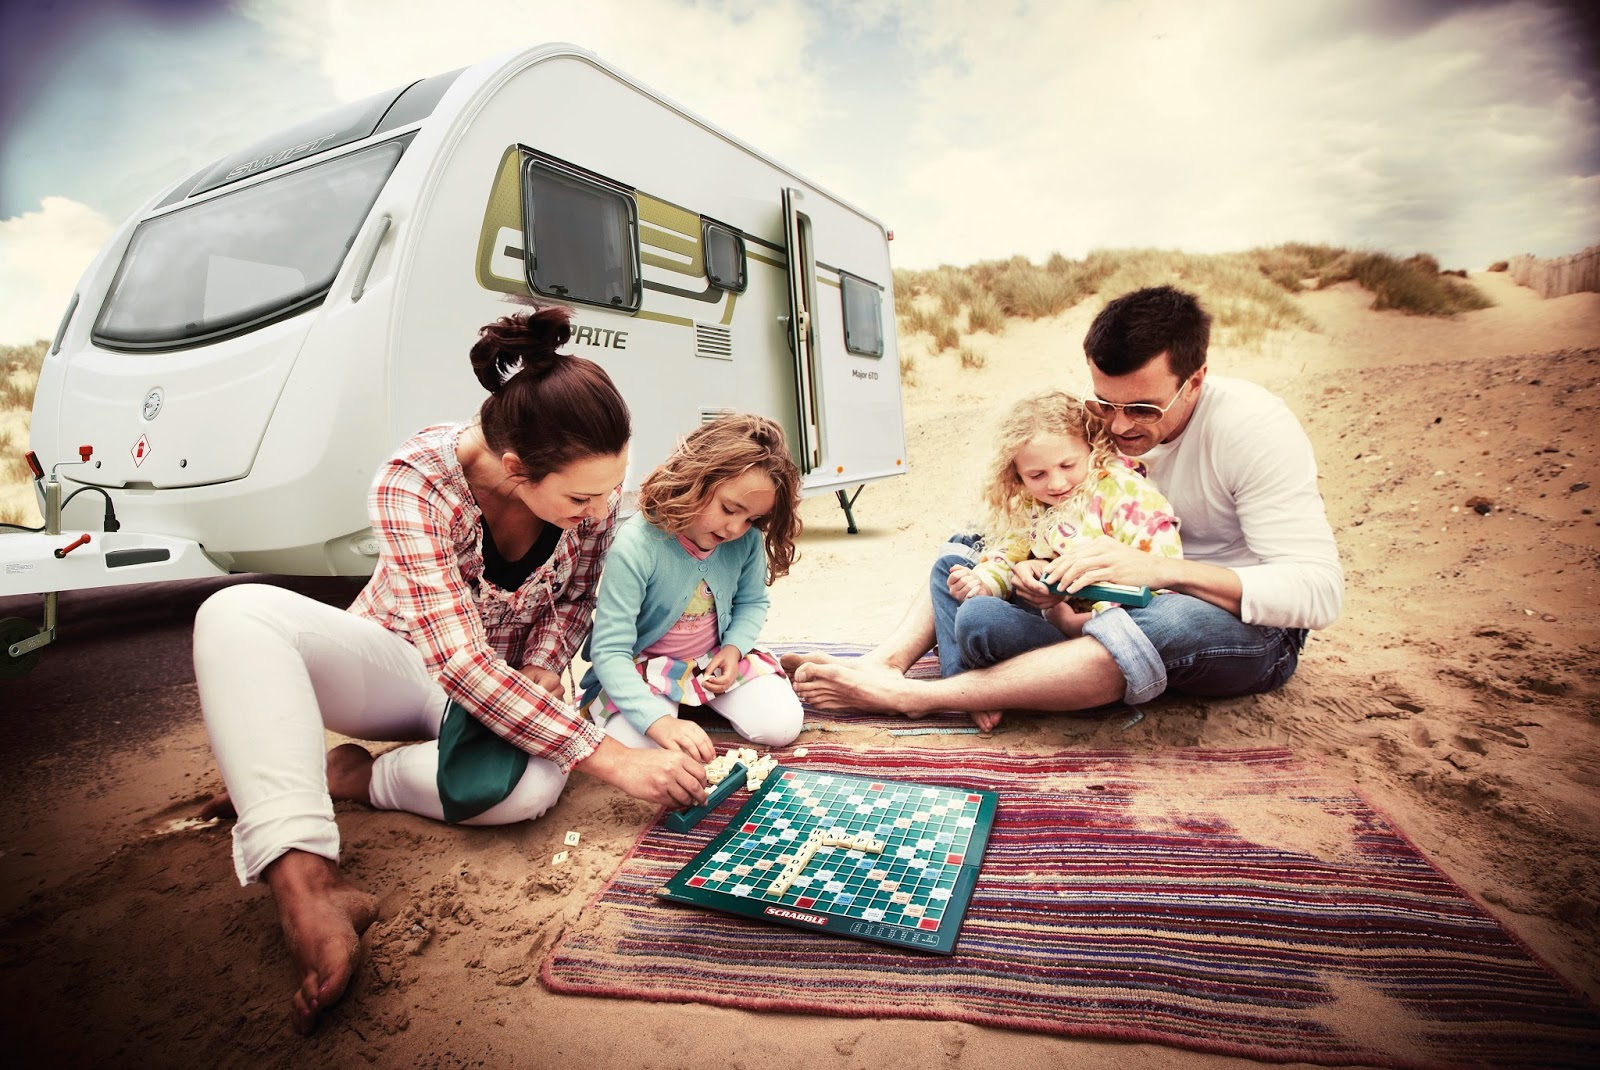 http://www.swiftgroup.co.uk/caravans/sprite/sprite